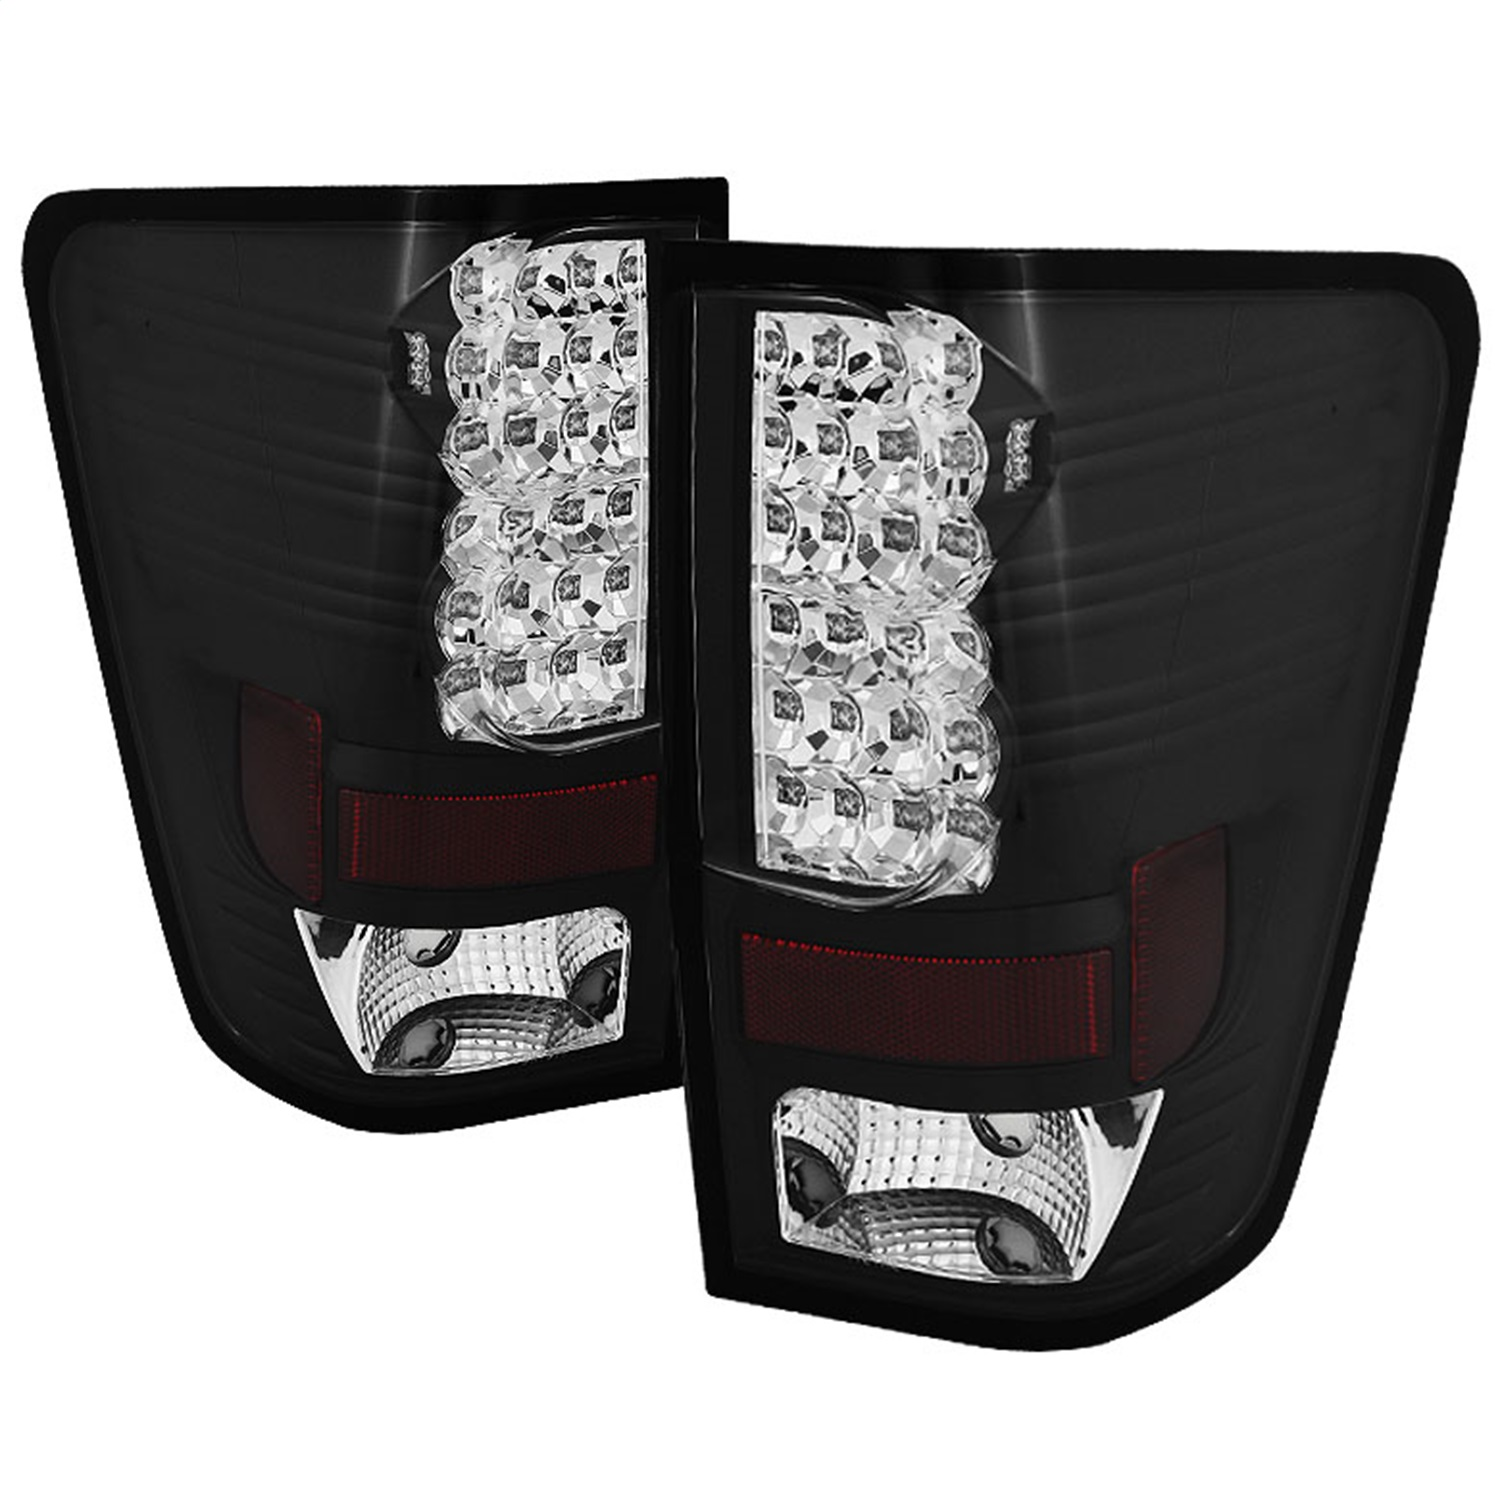 Spyder Auto 5070067 LED Tail Lights Fits 04-15 Titan